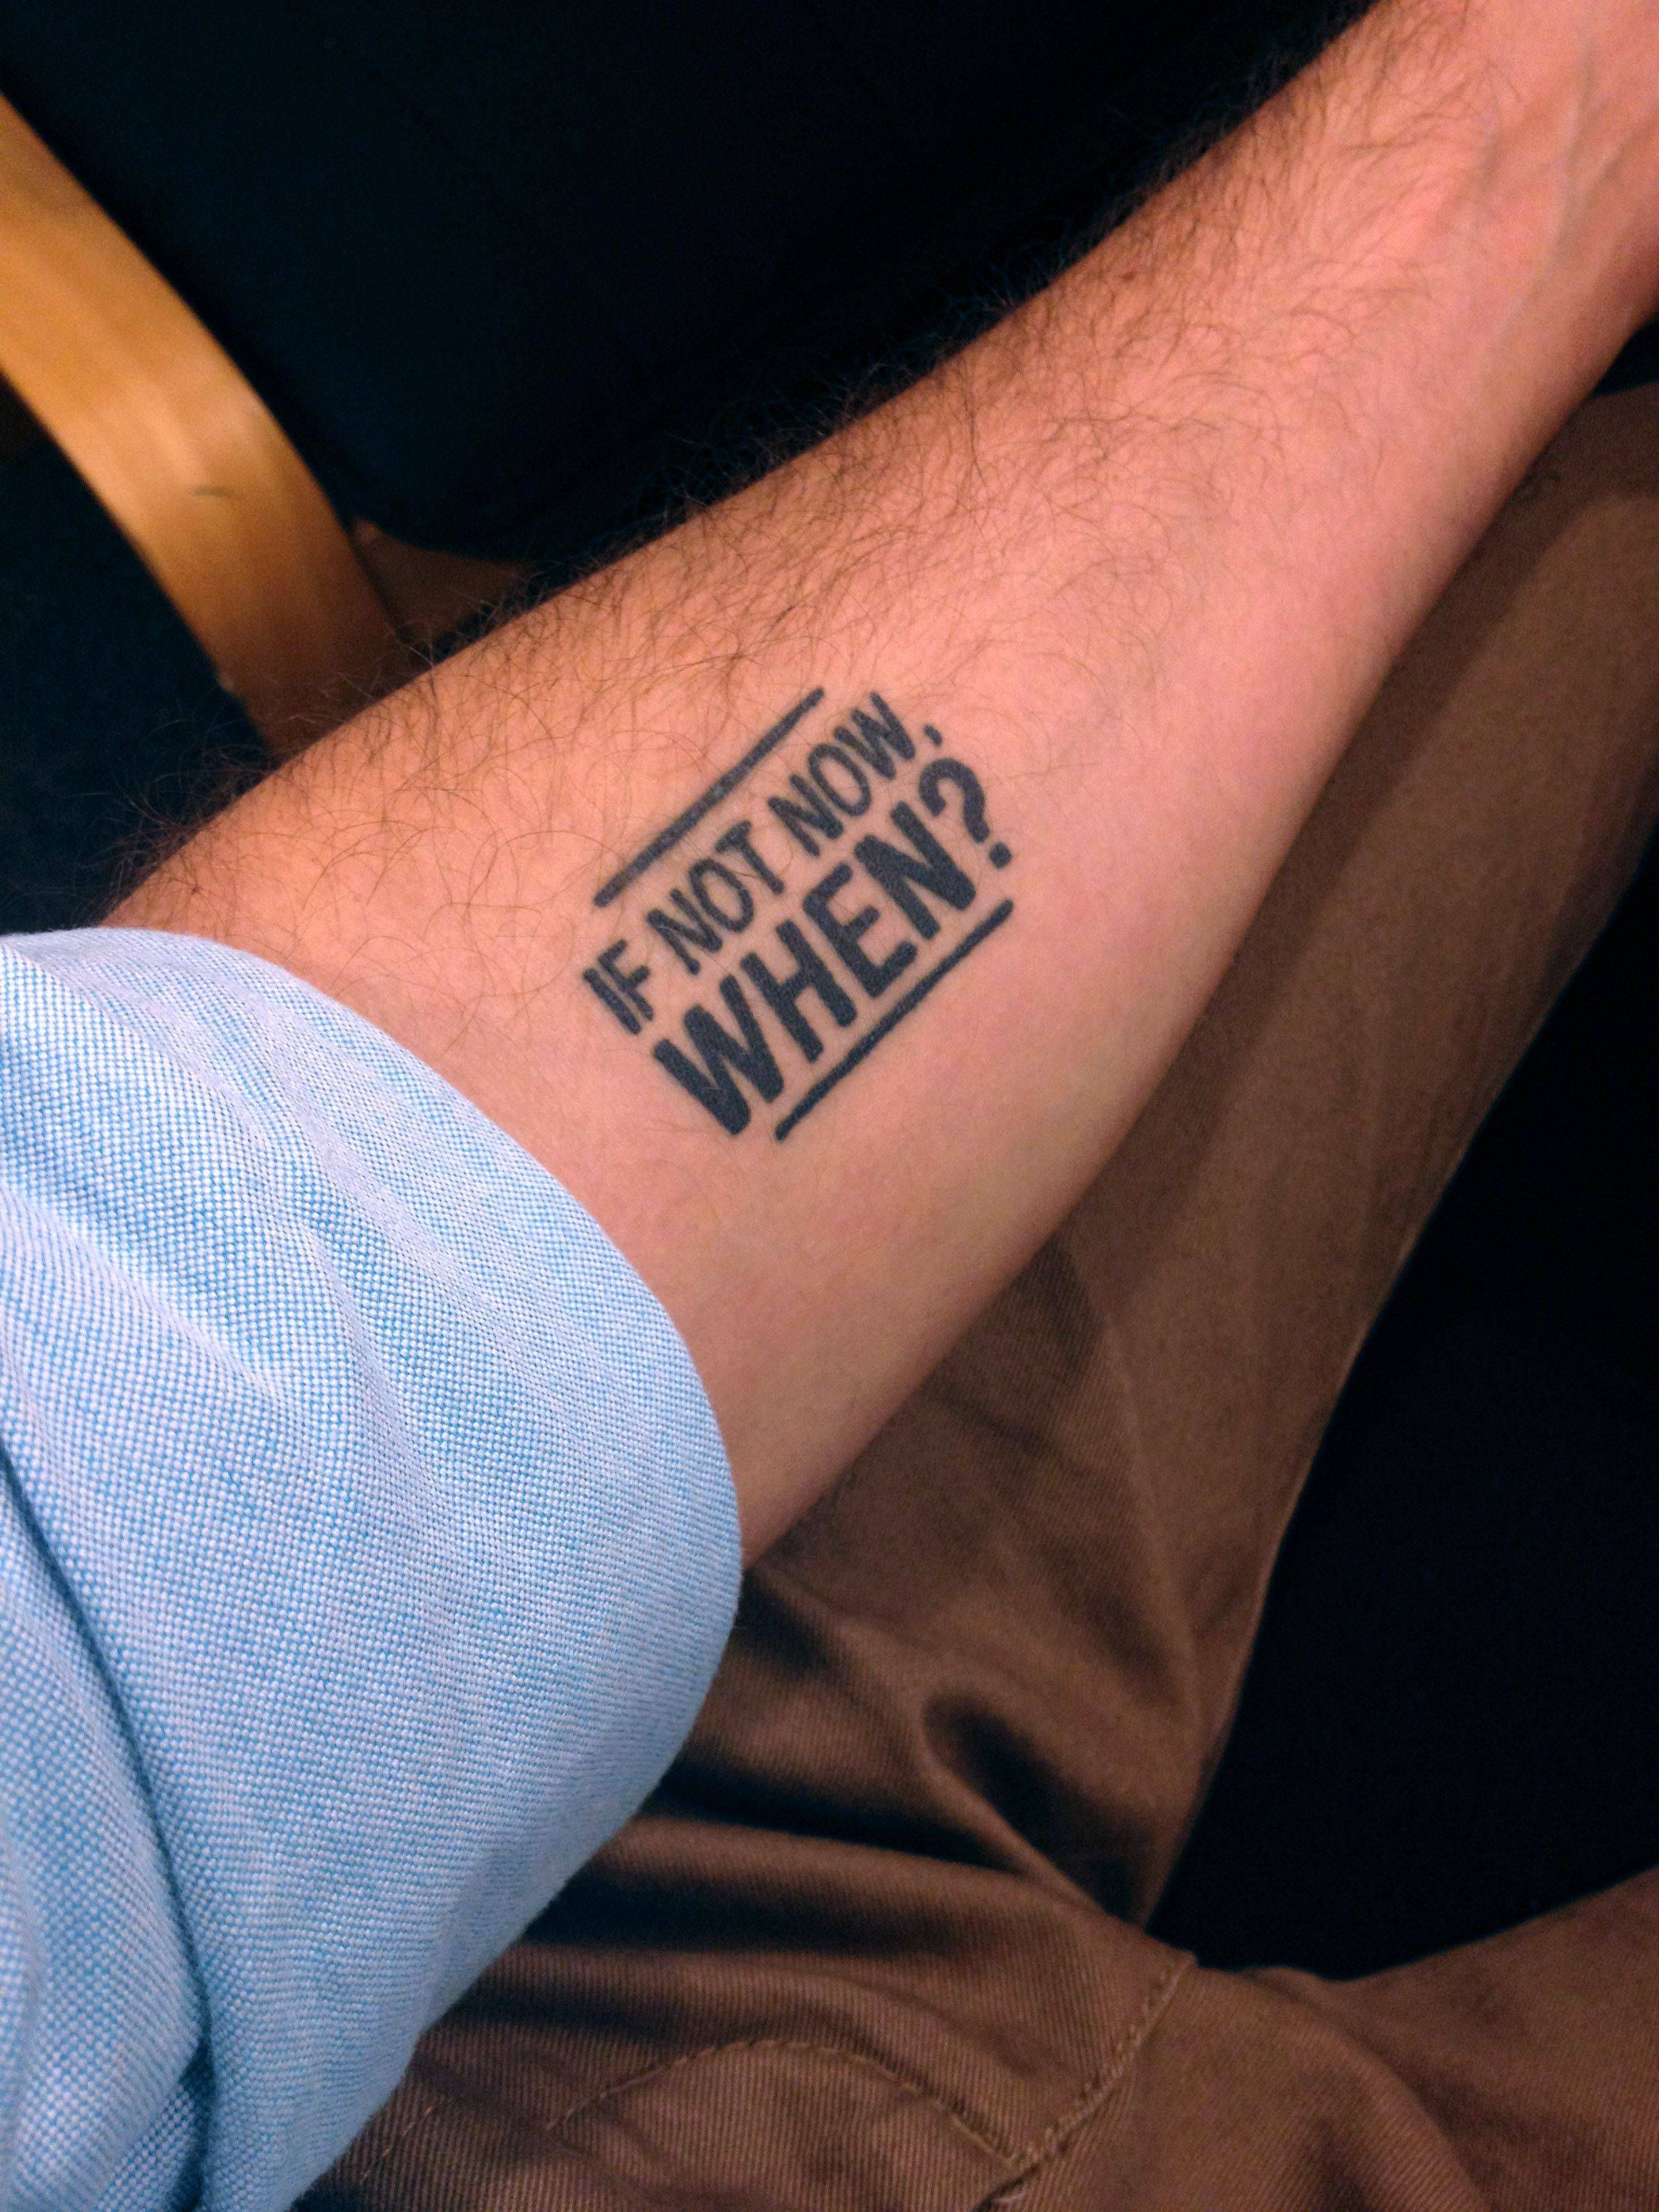 Motivational tattoo | Motivational tattoos Tattoos for ...